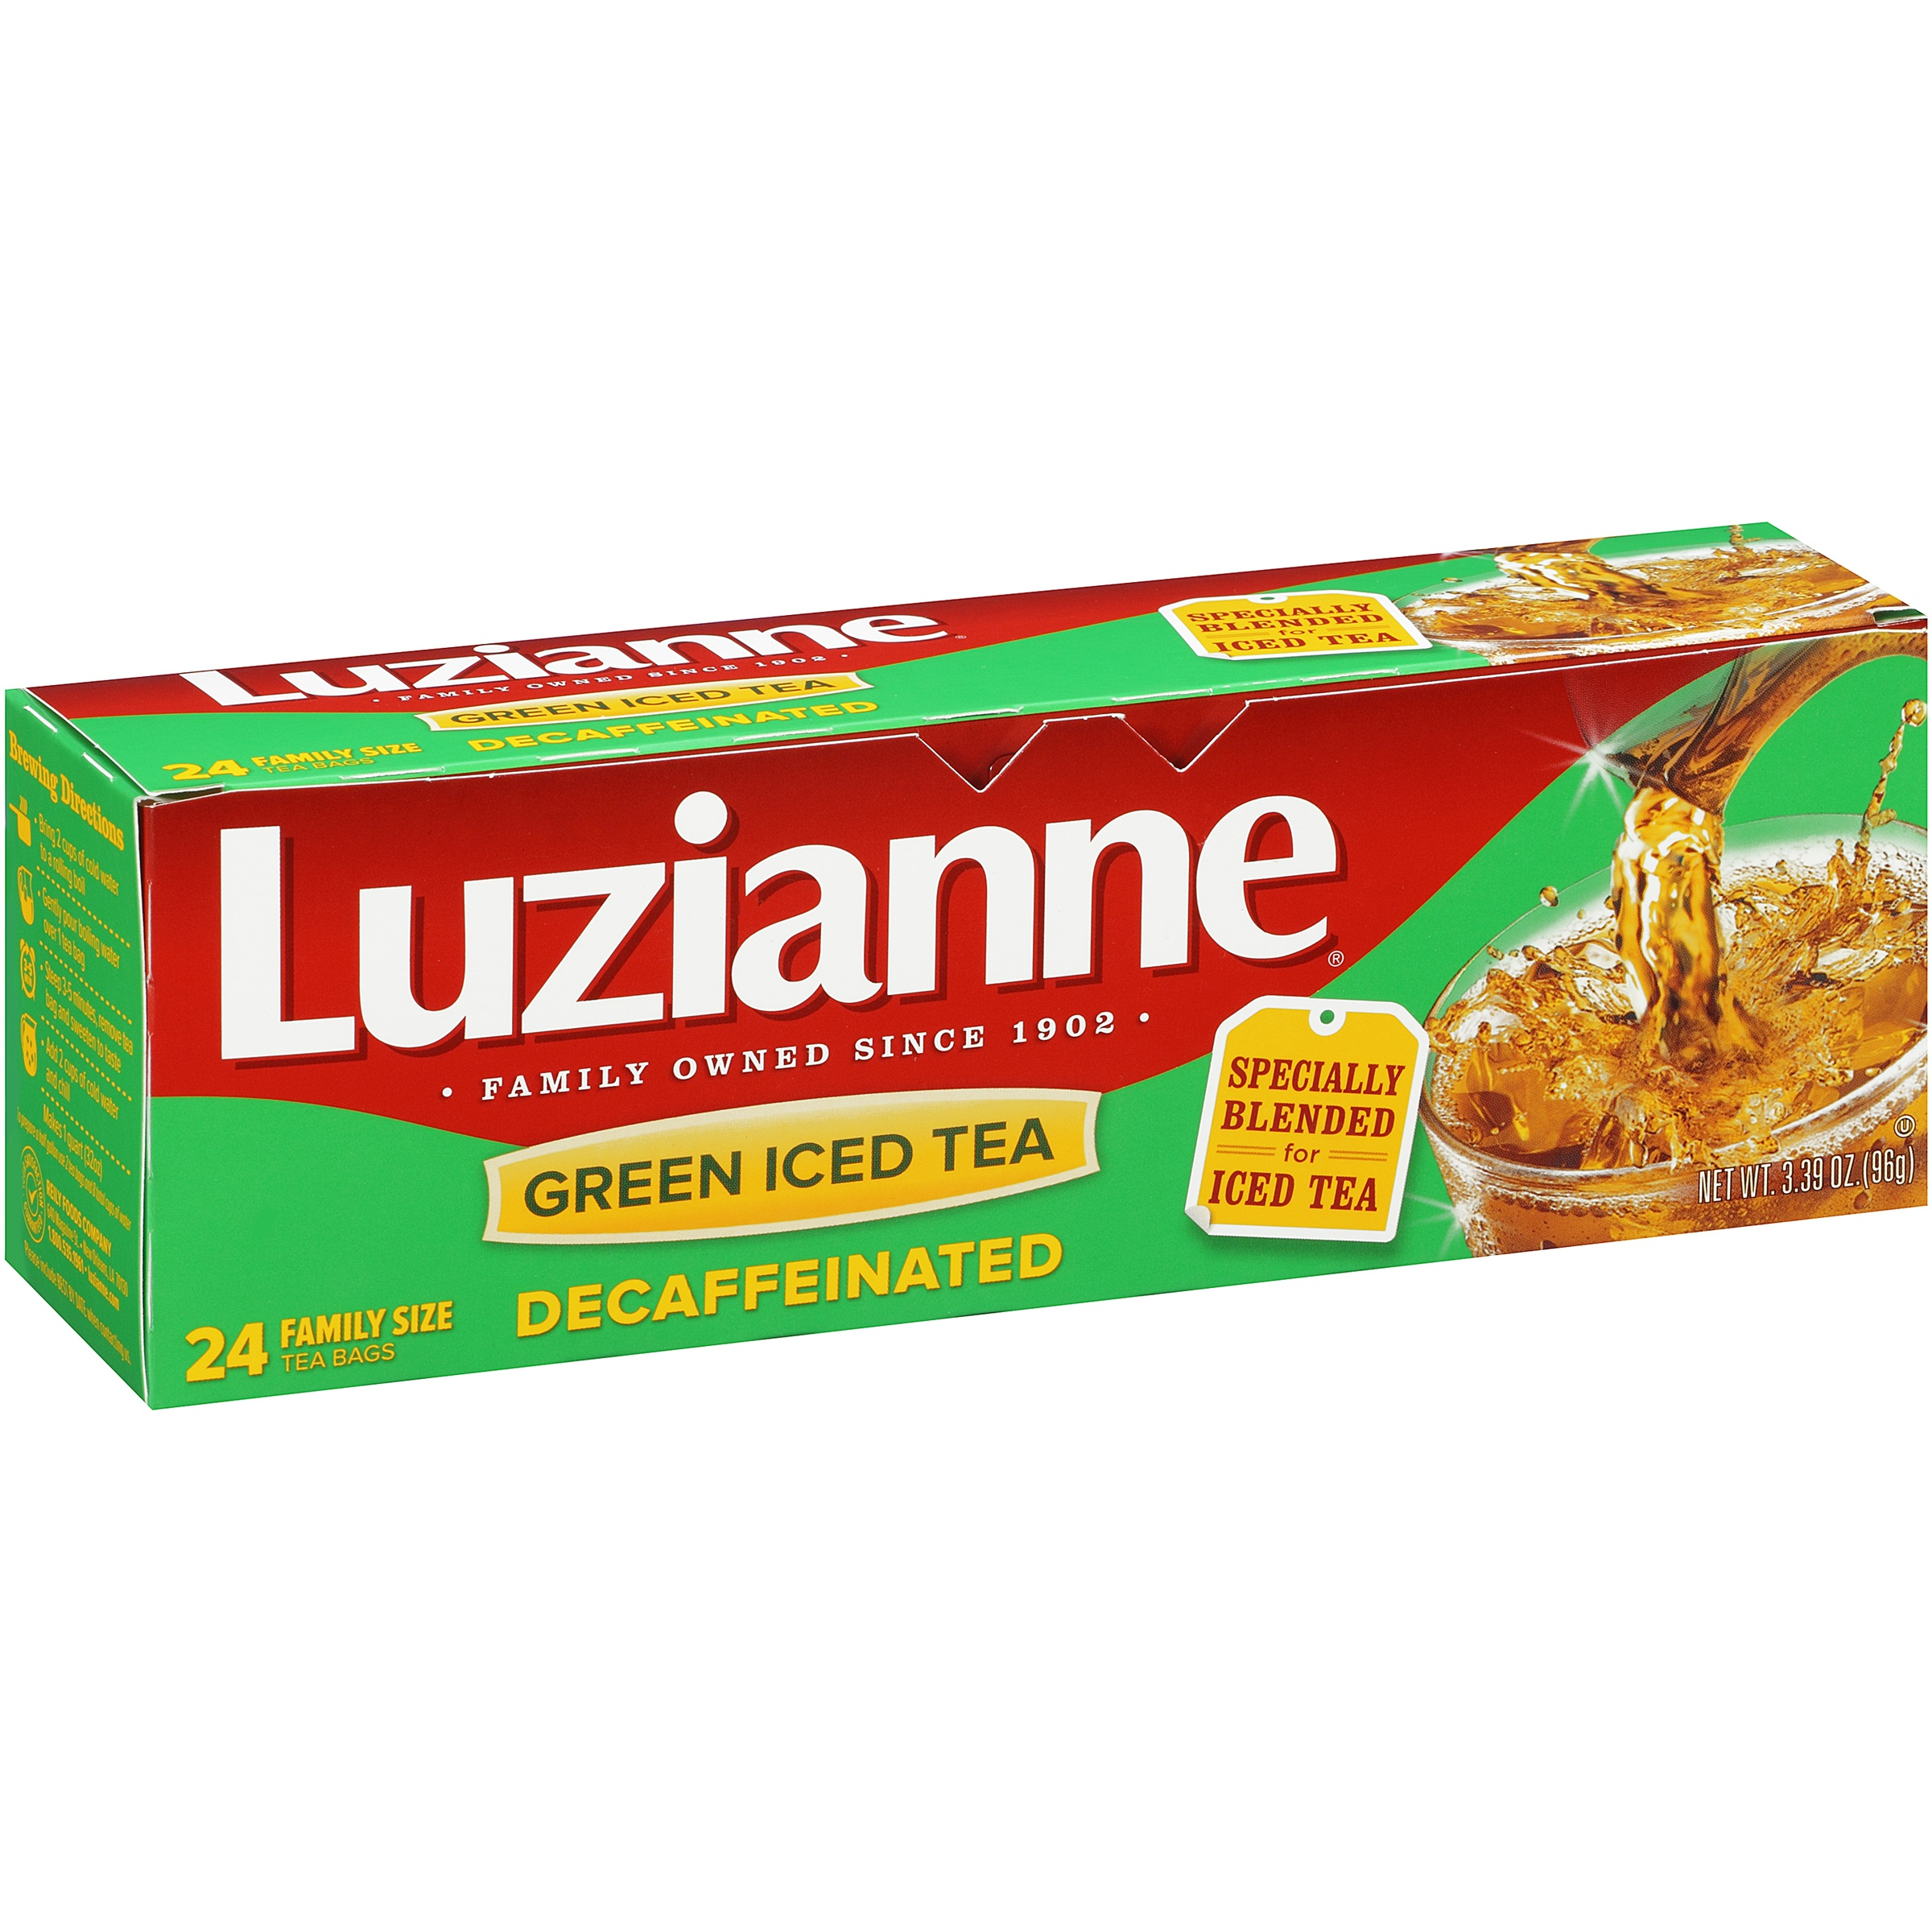 (6 Boxes) Luzianne® Decaffeinated Green Iced Tea 24 ct. Bag.